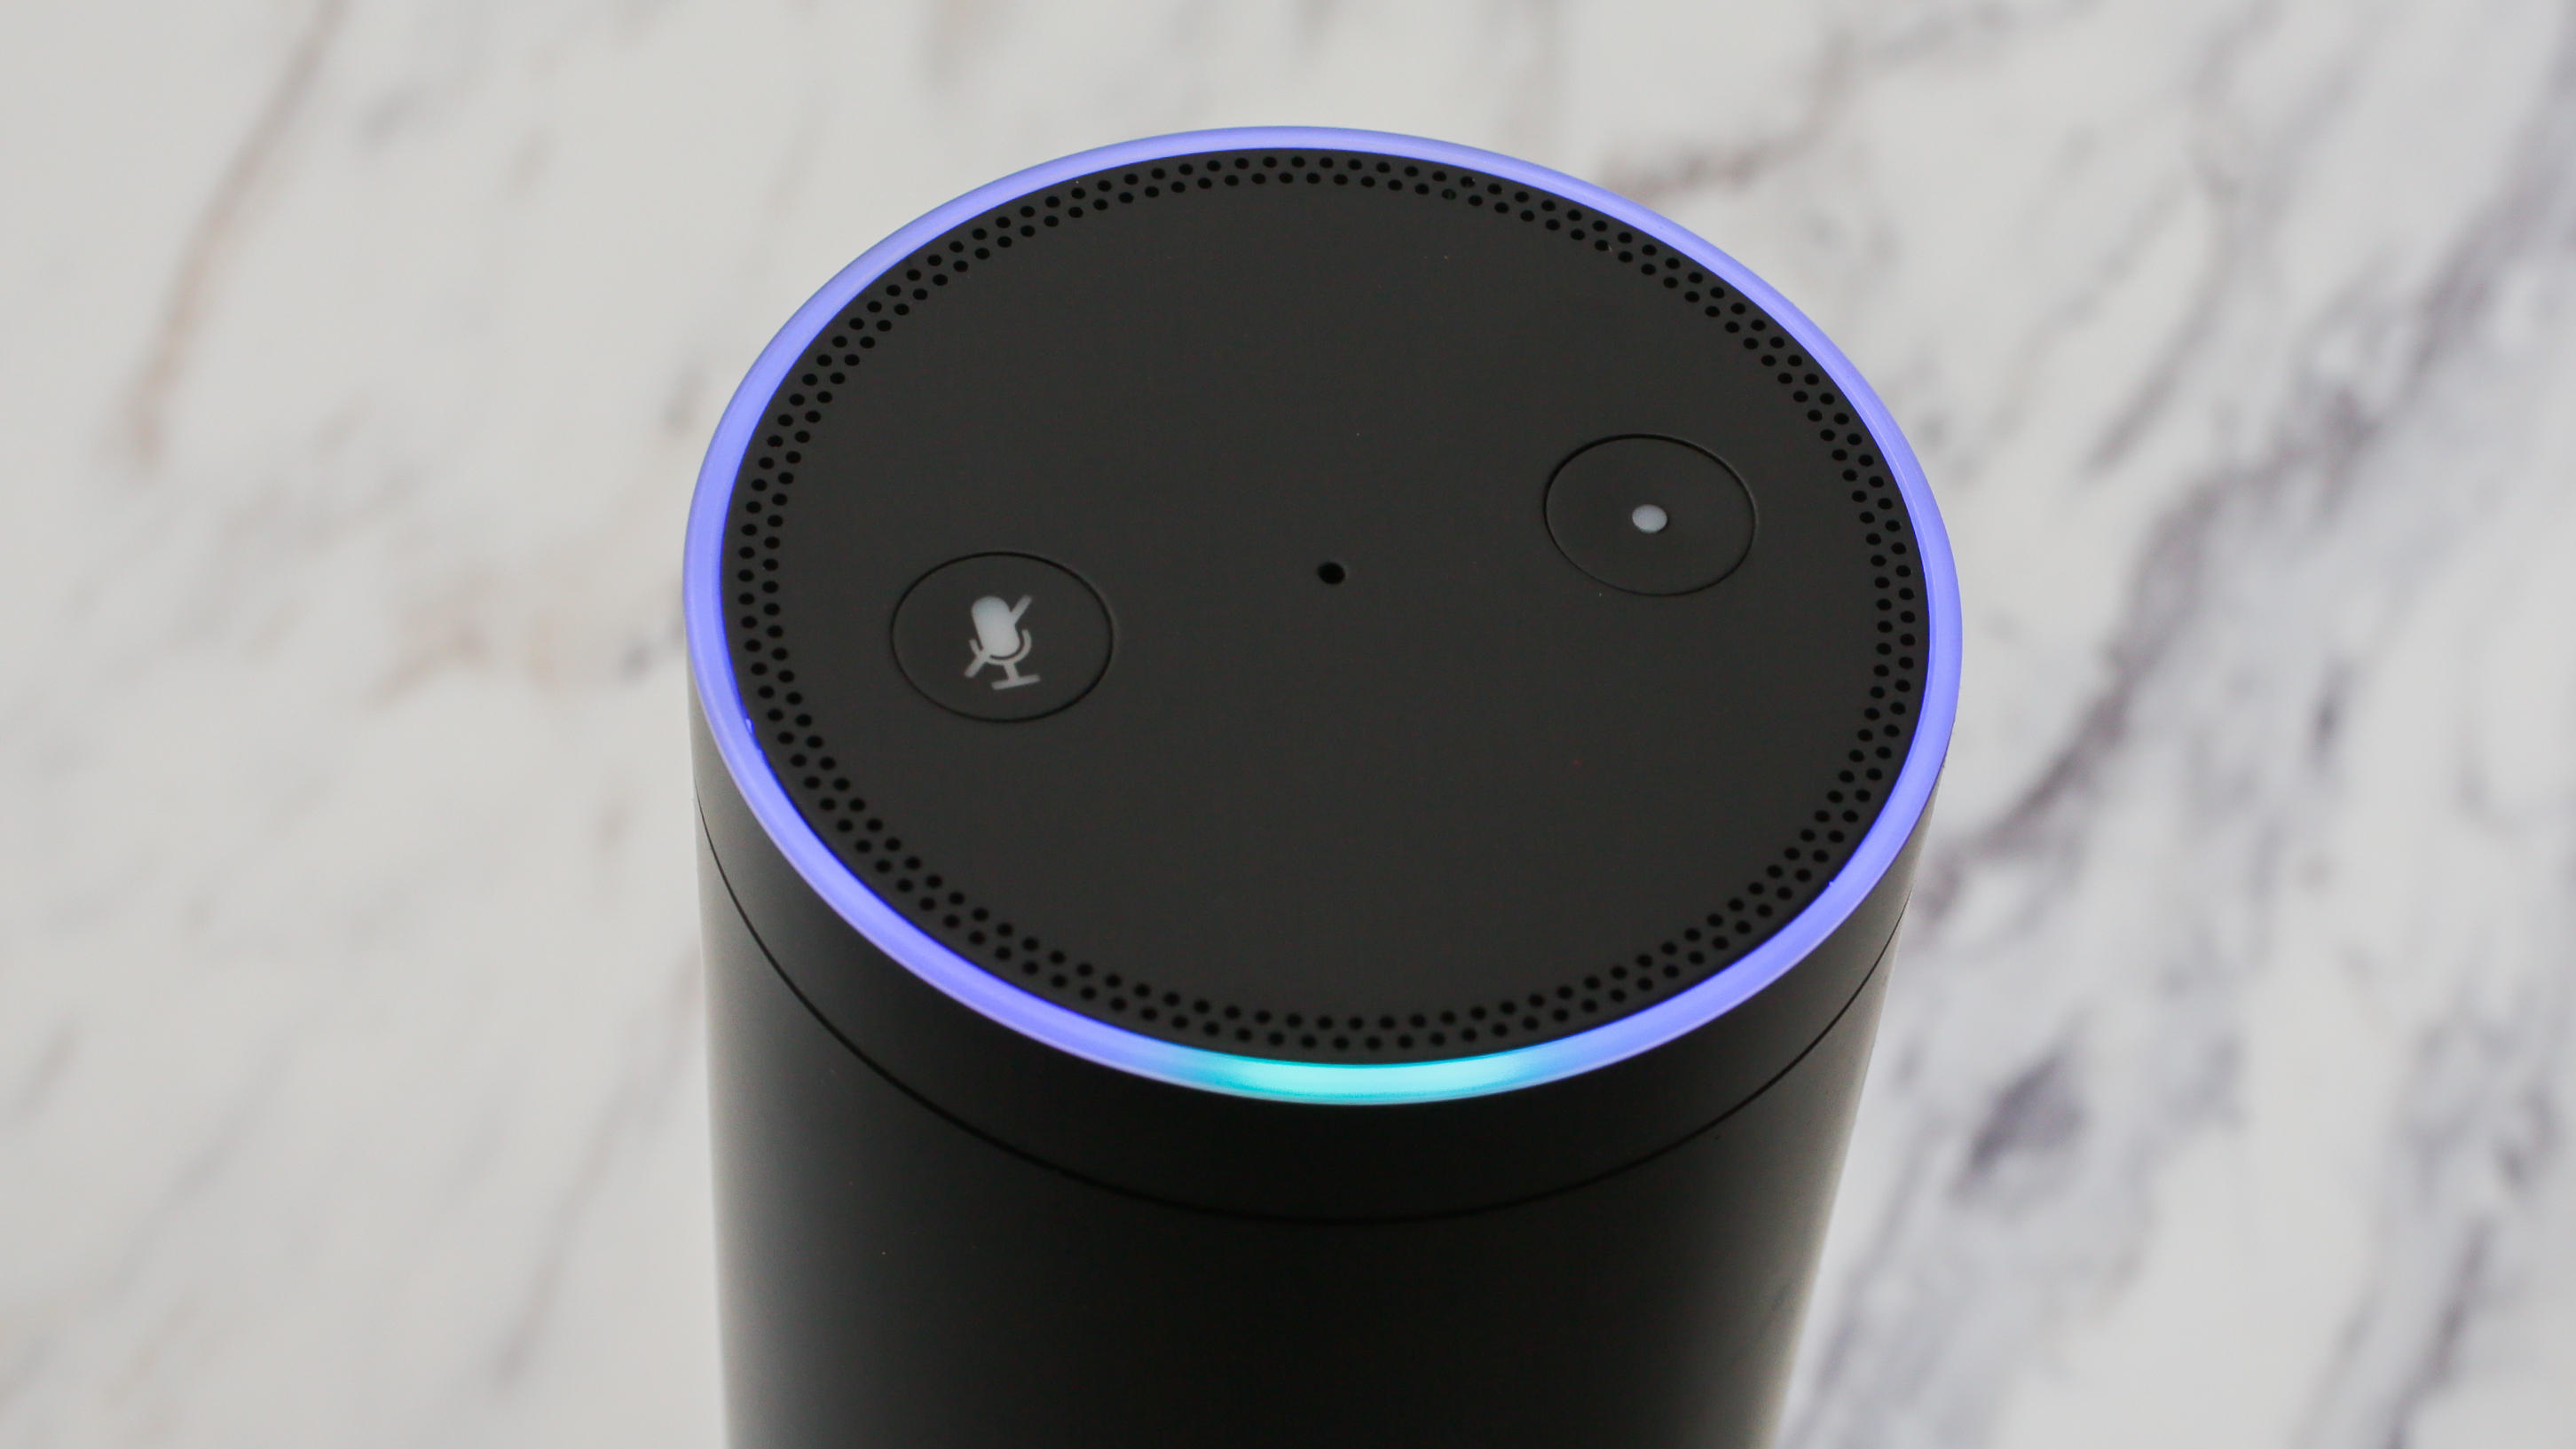 Amazon Echo essentials: 34 useful tips to get the most from Alexa